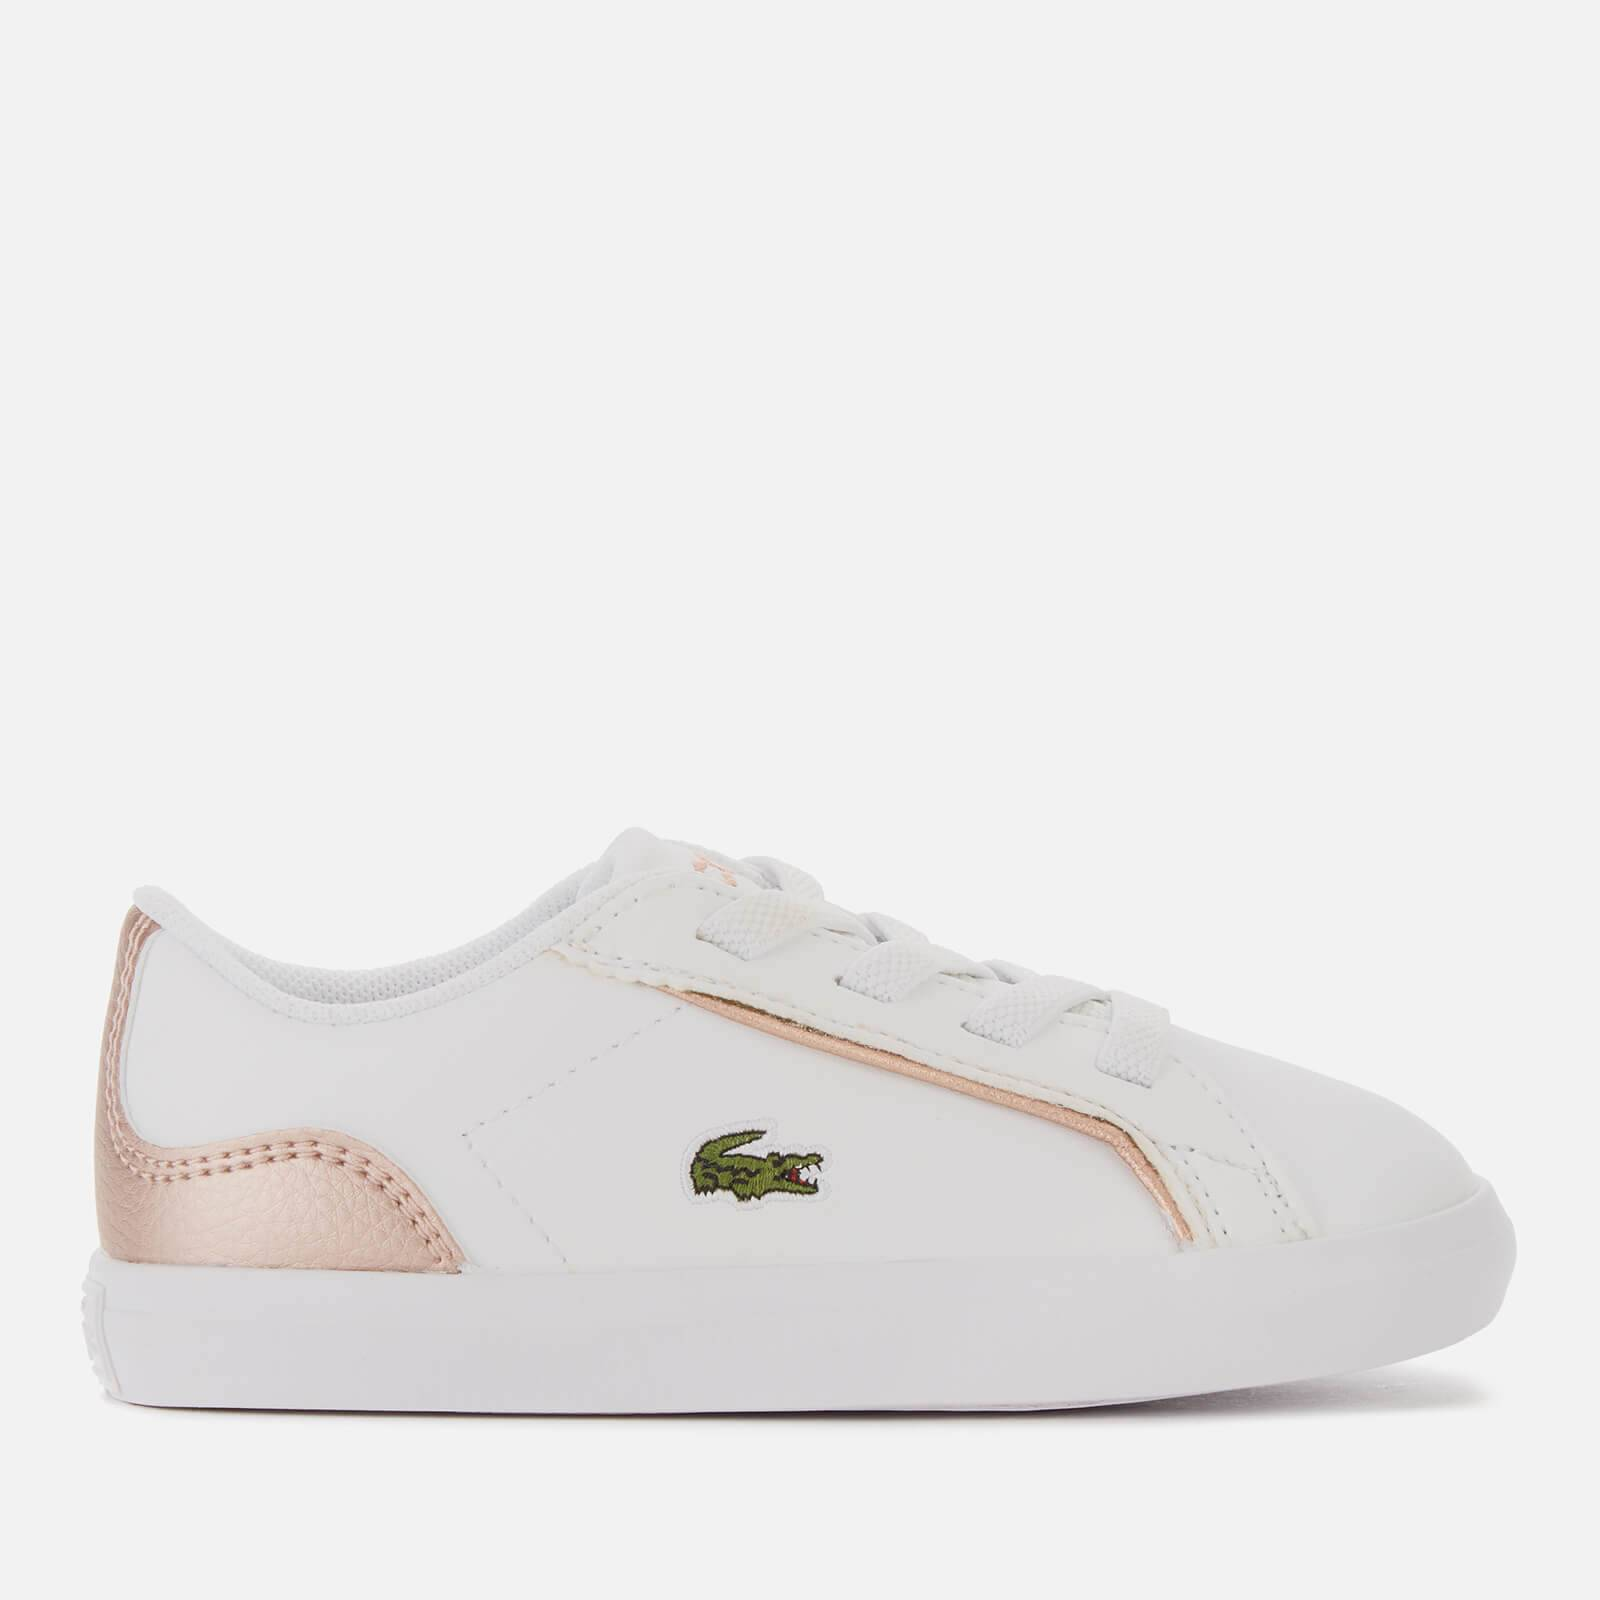 Lacoste Toddlers' Lerond Trainers - White/Pink - UK 6 Toddler